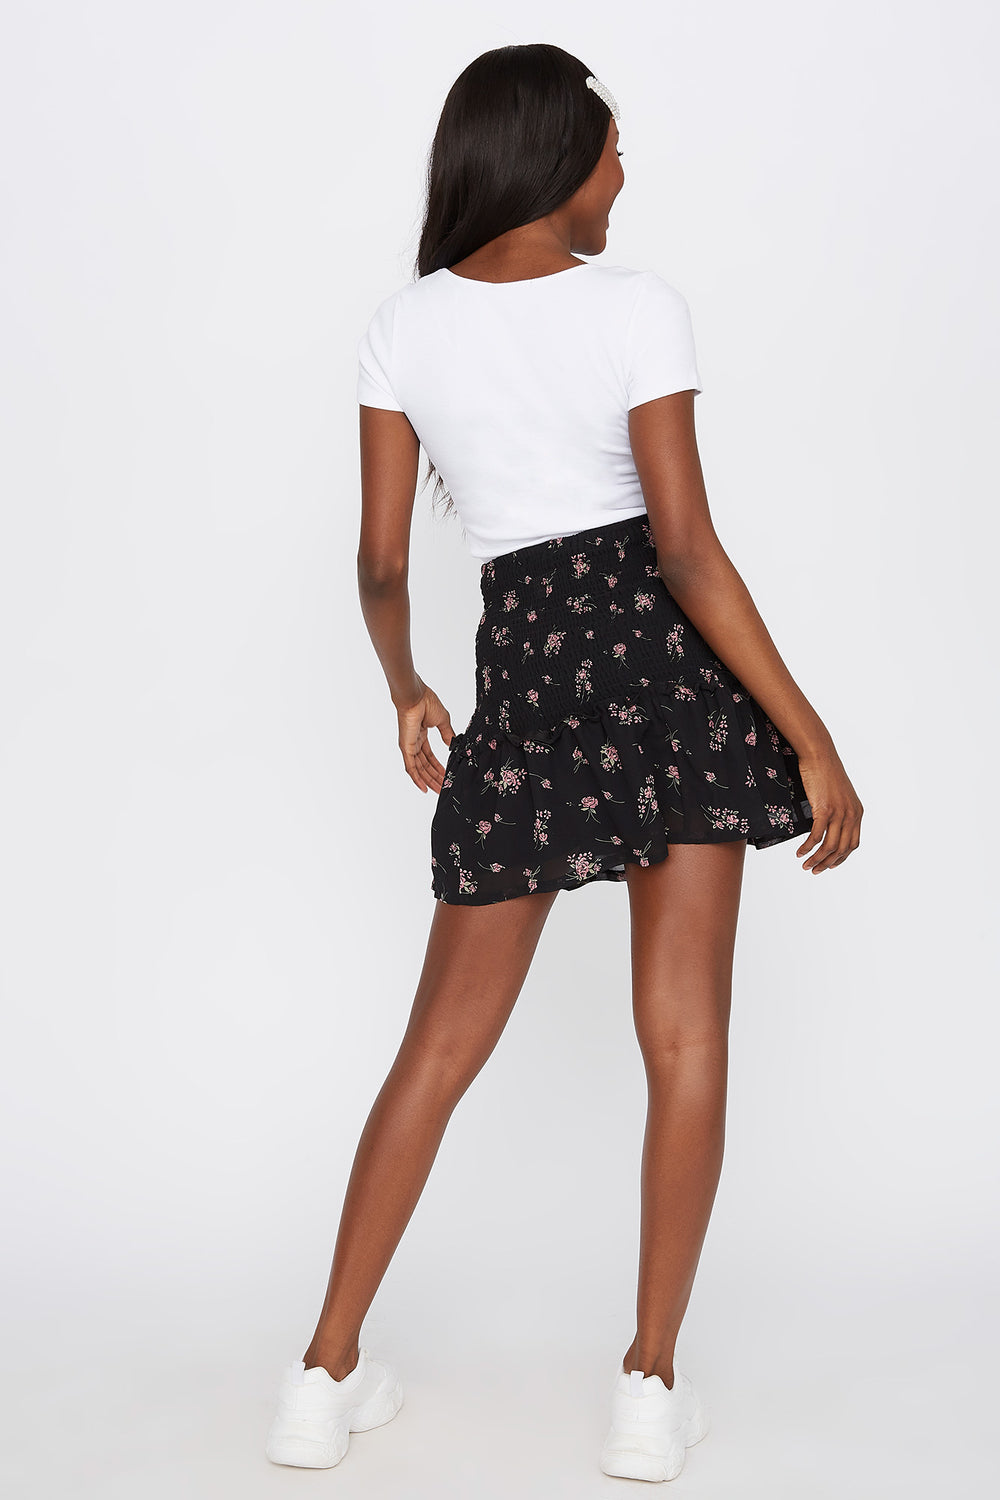 Smocked Floral Mini Skirt Black